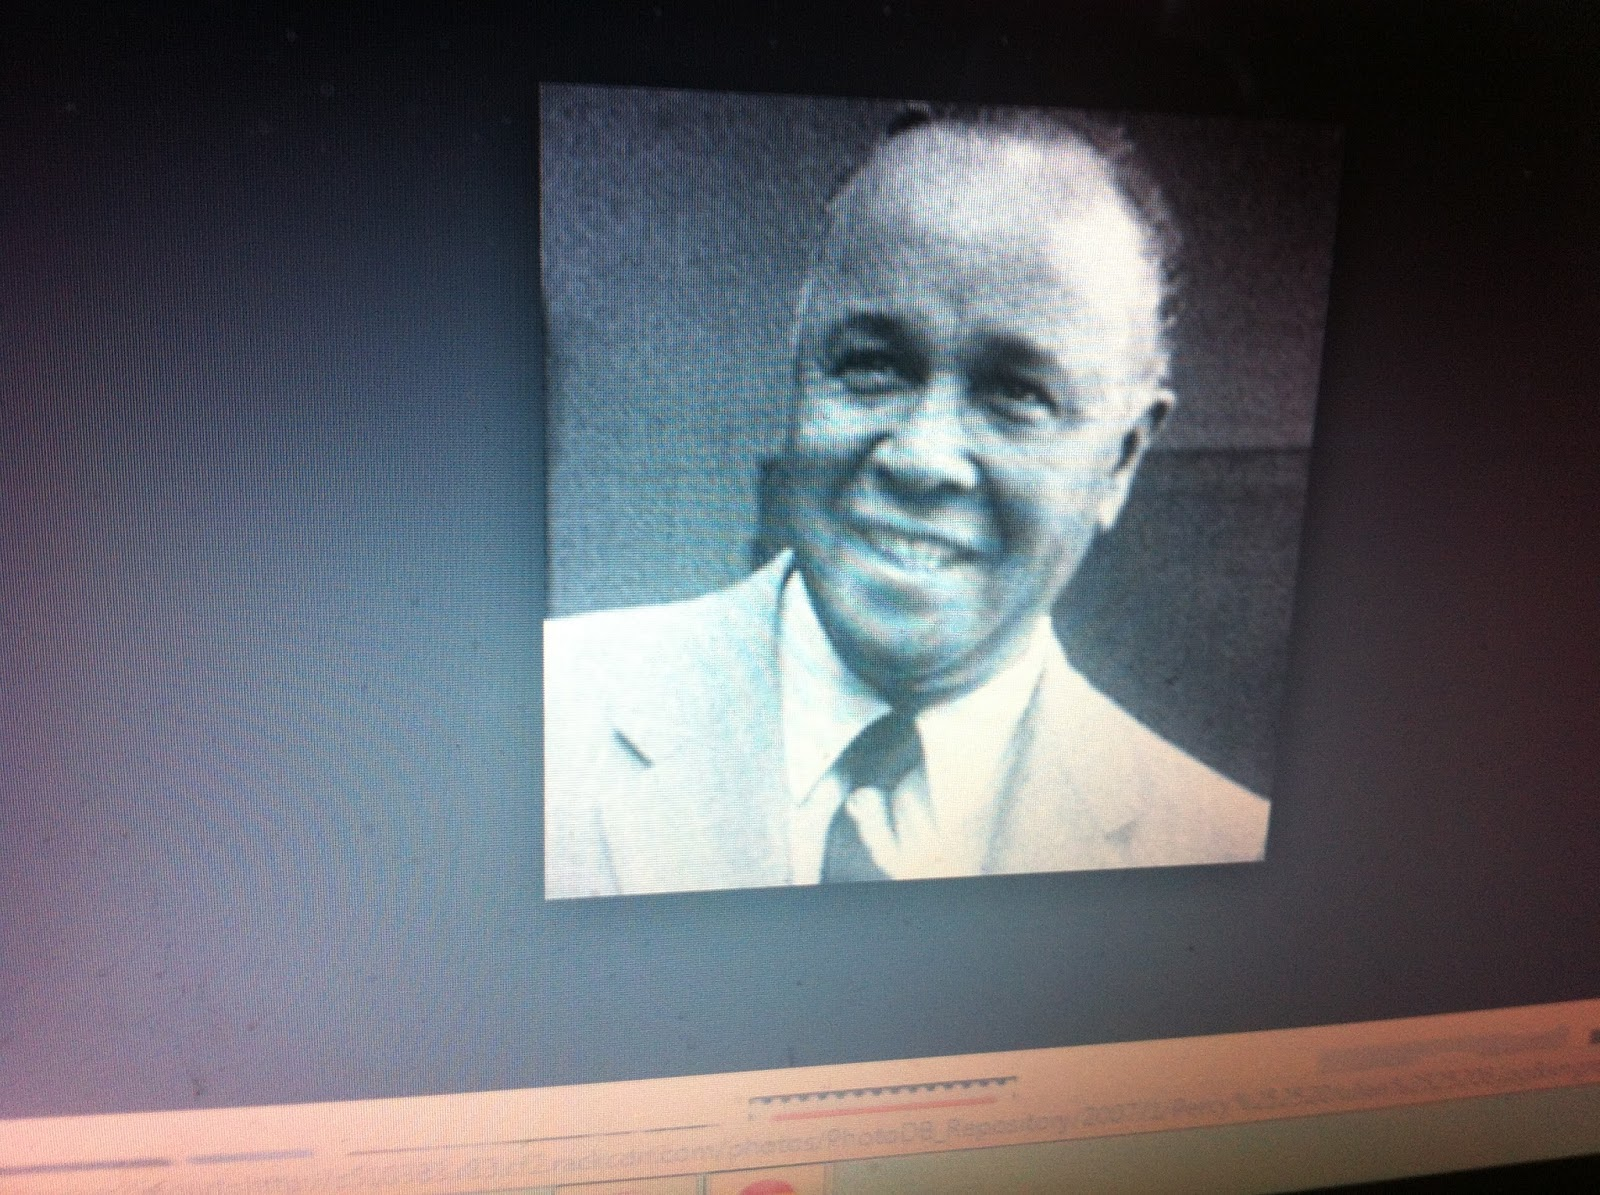 percy julian biography Percy lavon julian was an american chemist who is best known for his pioneering work on steroids and becoming the first black chemist to be inducted into the national academy of sciences in america childhood and early life percy julian was born on 11 april 1899 in montgomery, alabama he was the eldest child of james sumner julian and elizabeth lena julian.